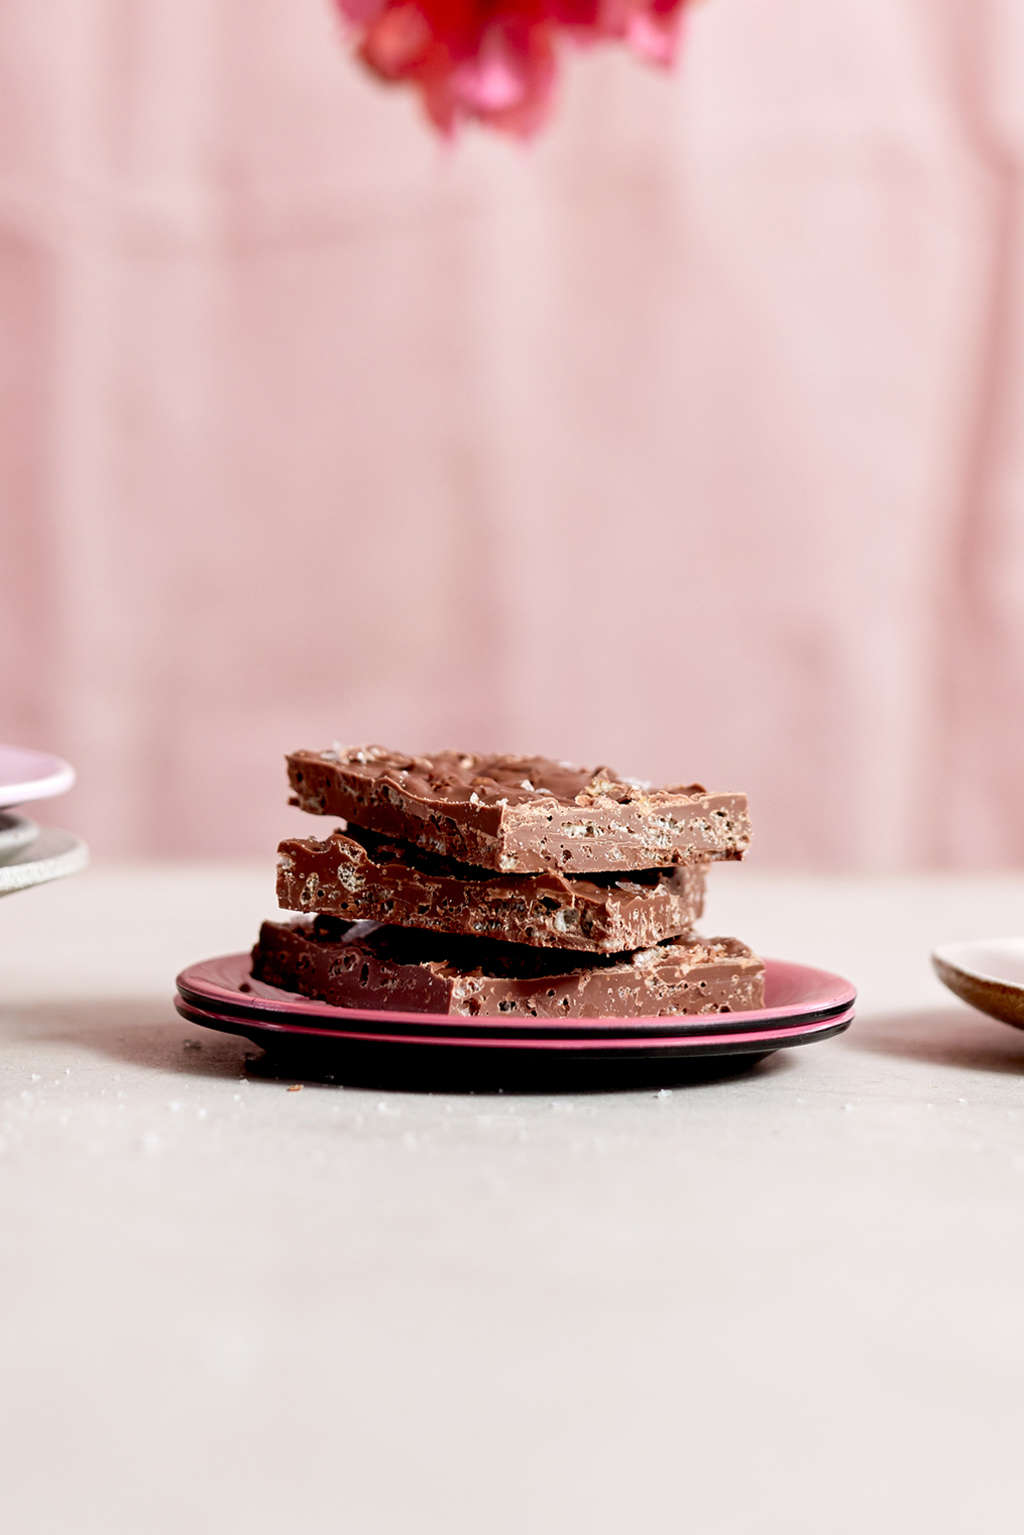 The 2-Ingredient Candy to Make You Feel Like a Total Genius